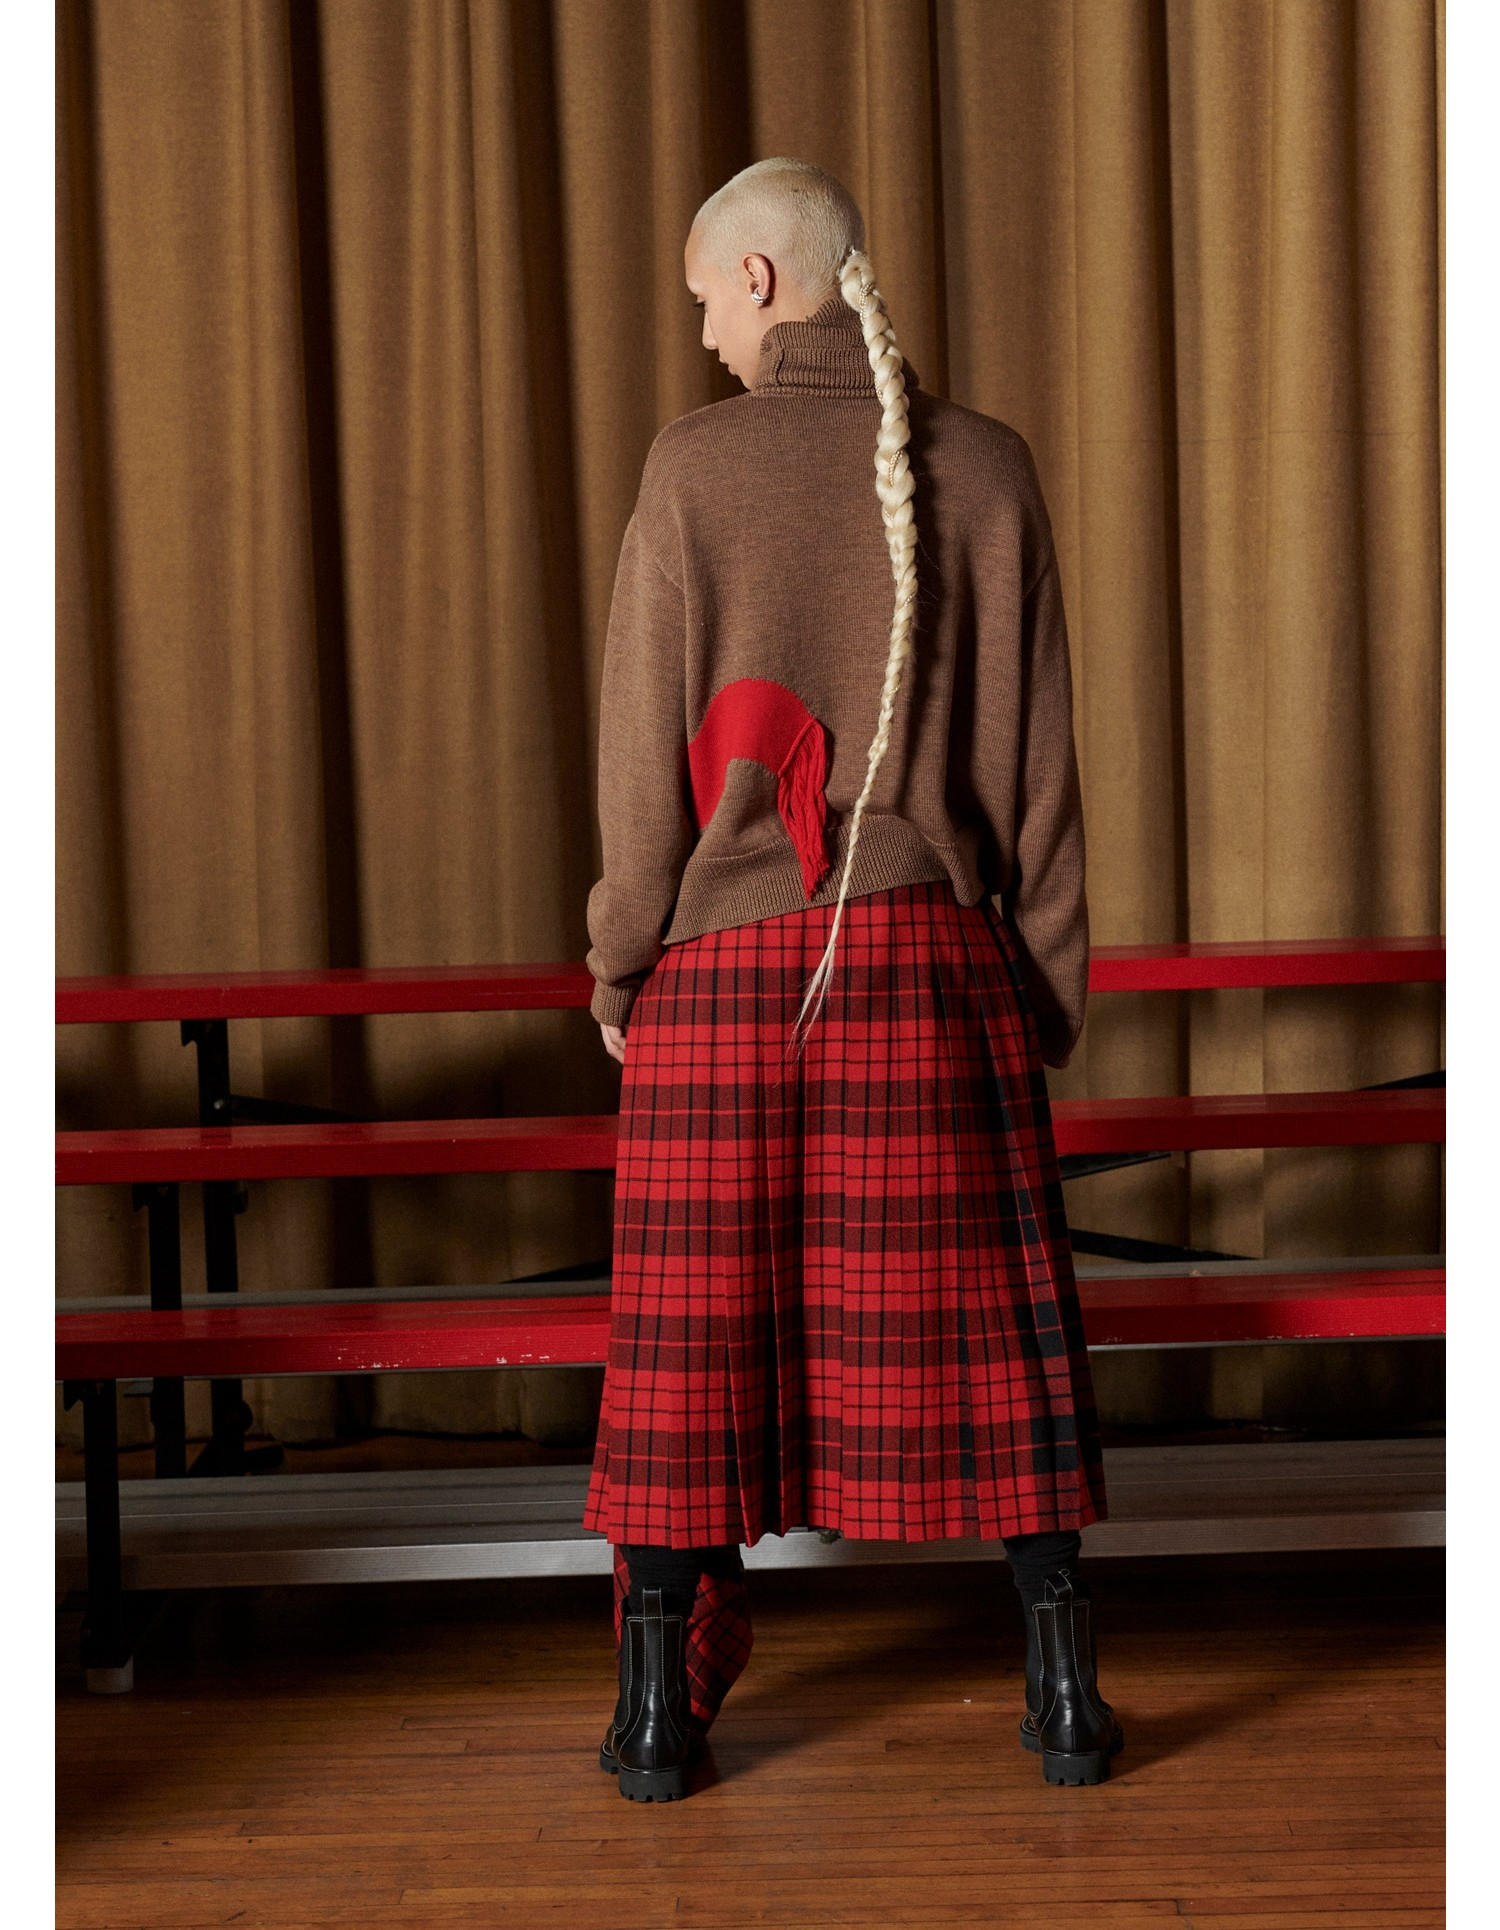 MONSE Tartan Pleated Academy Skirt in Scarlet and Black on Model Back View